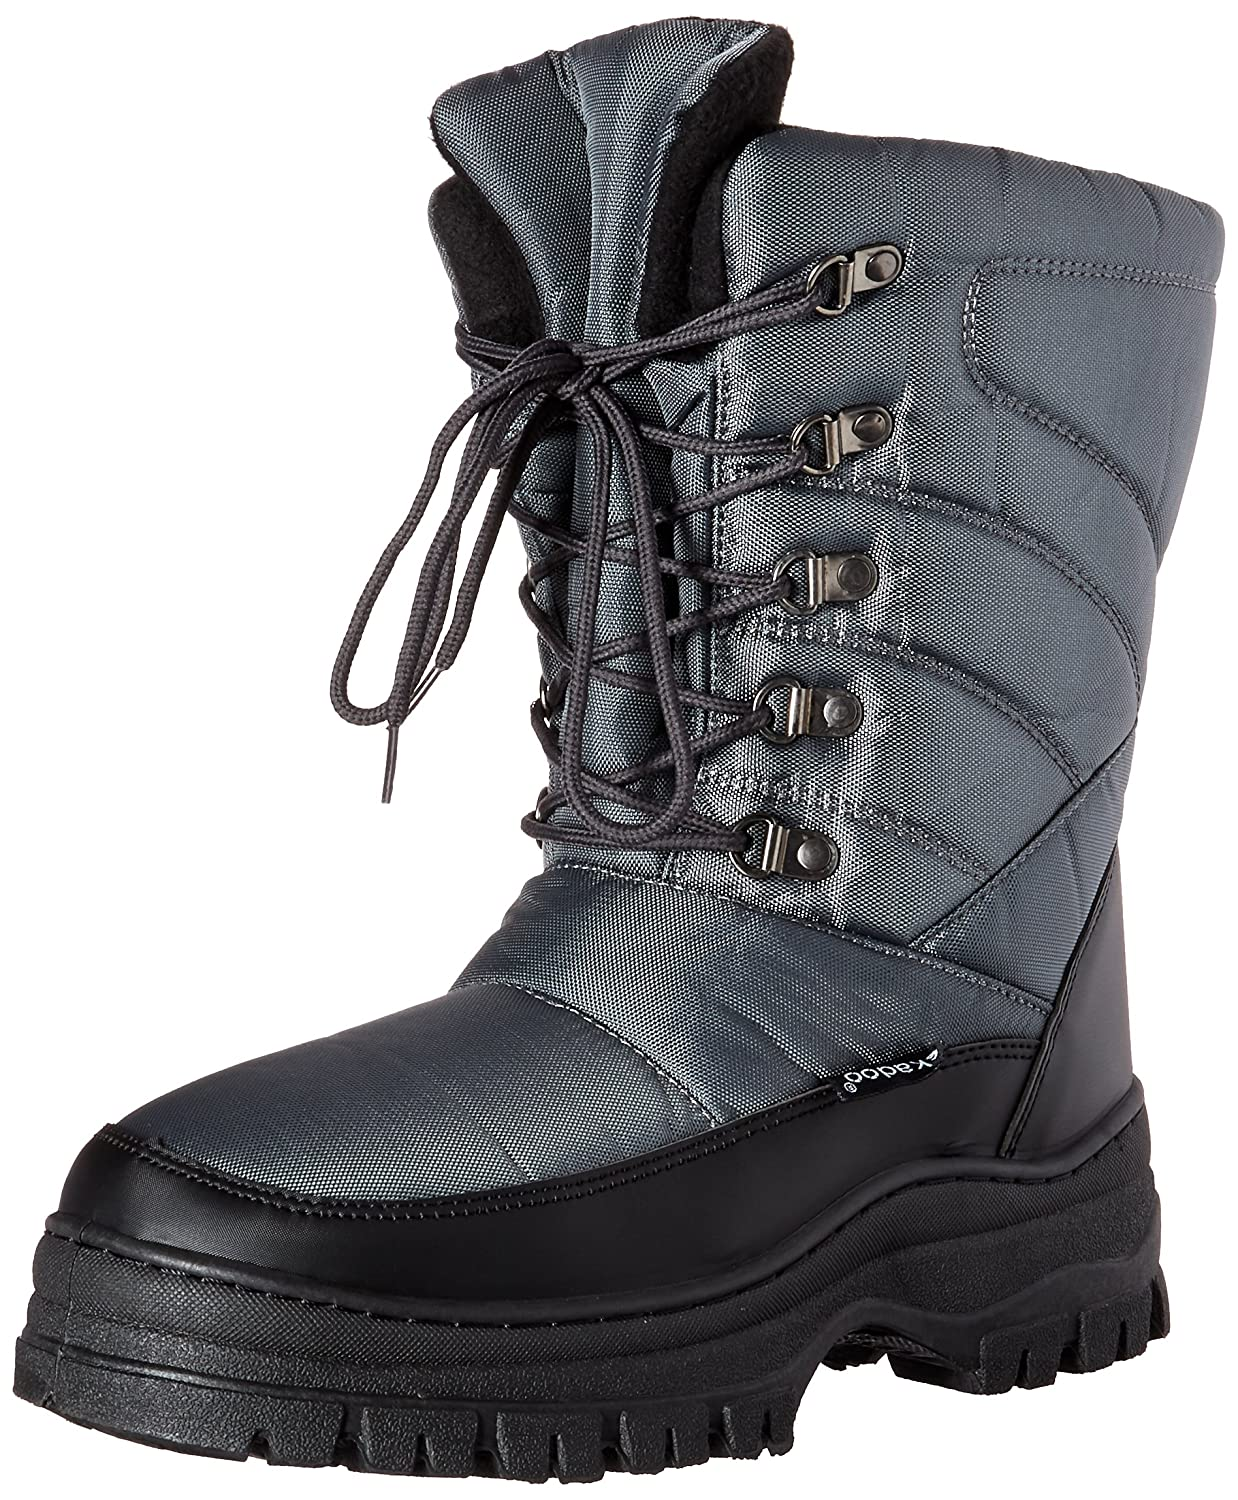 7702 Mens Lace-Up Snow Boots